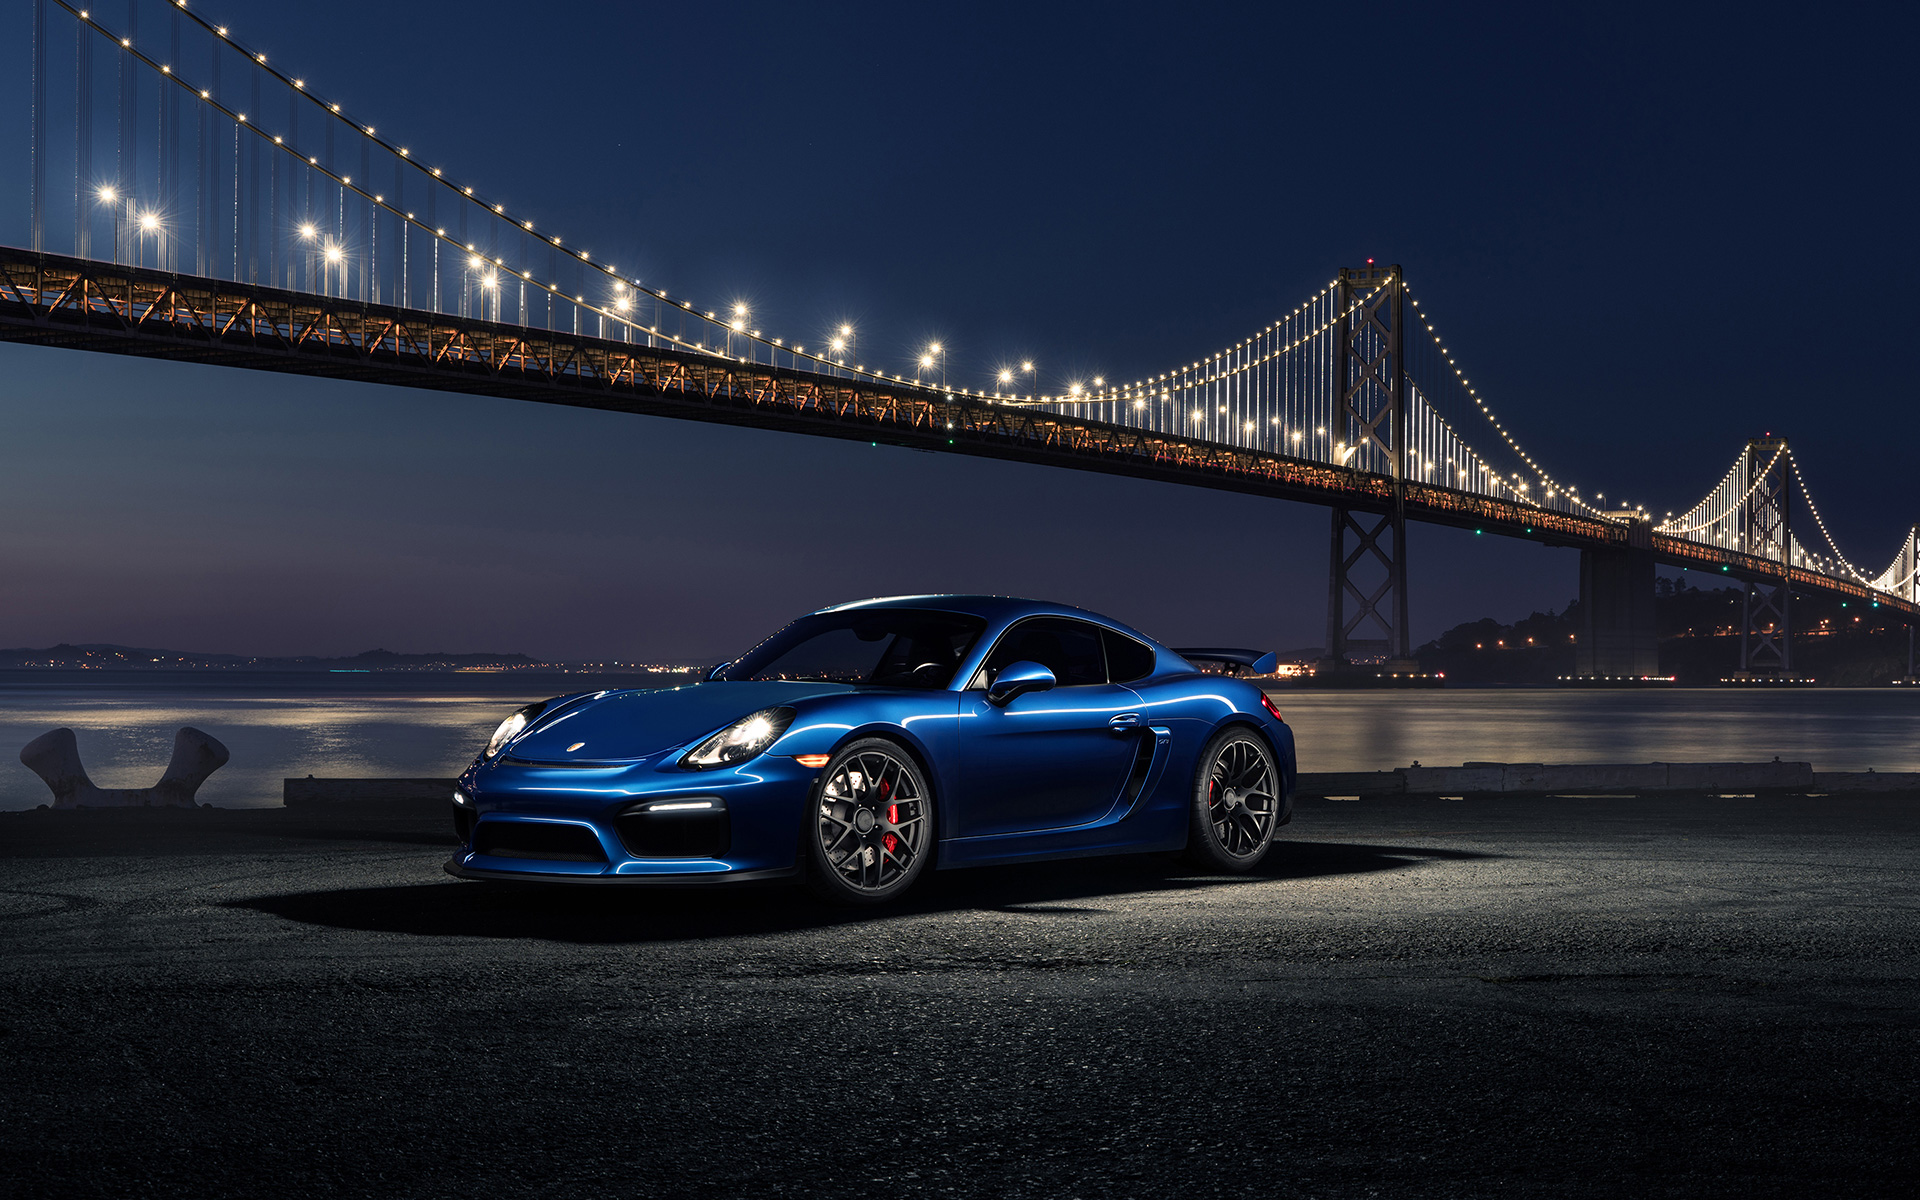 Porsche Cayman Gt4 Avant Garde Wheels Wallpaper Hd Car Wallpapers Id 6535